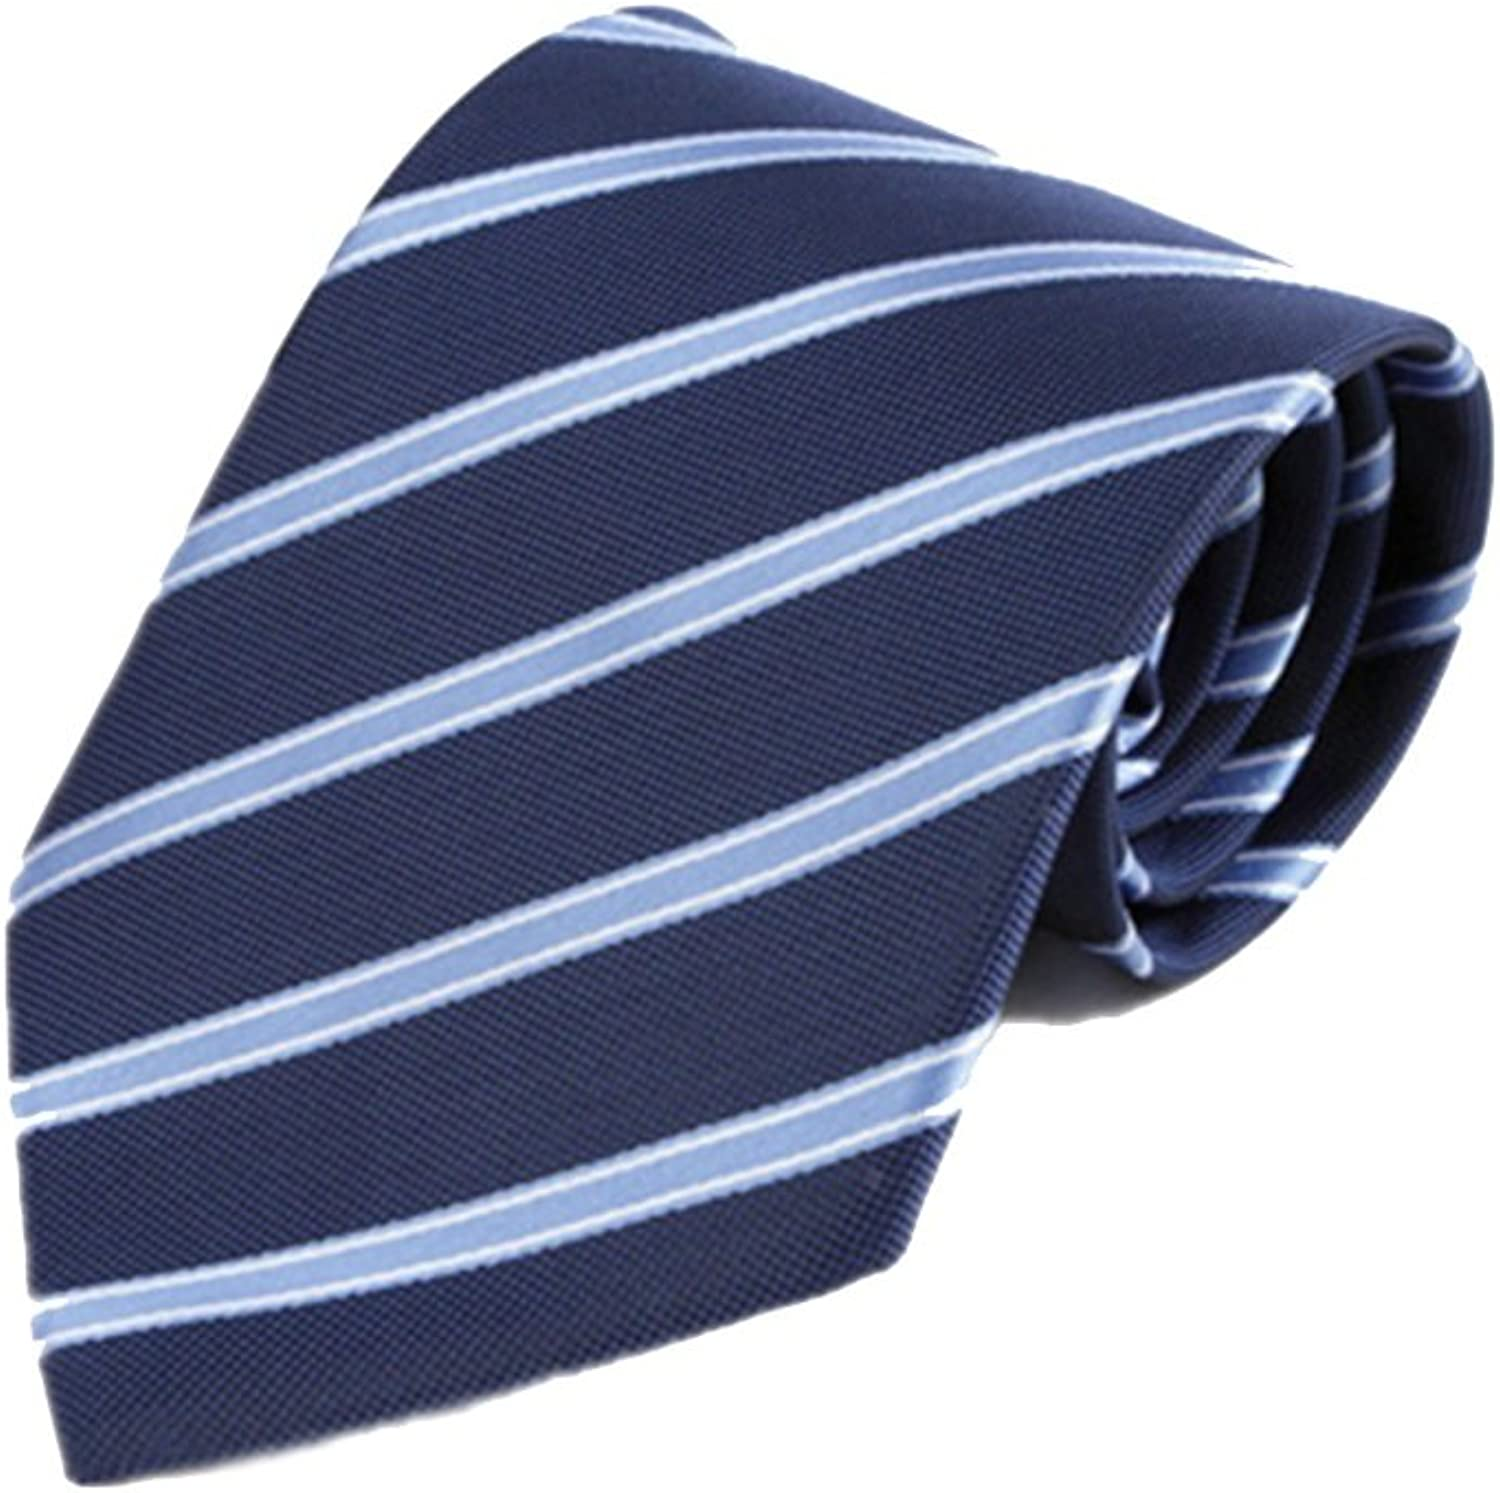 Men's Tie Fine Suit Business Tie Casual Tie Polyester Necktie blueee Wide Striped Tie